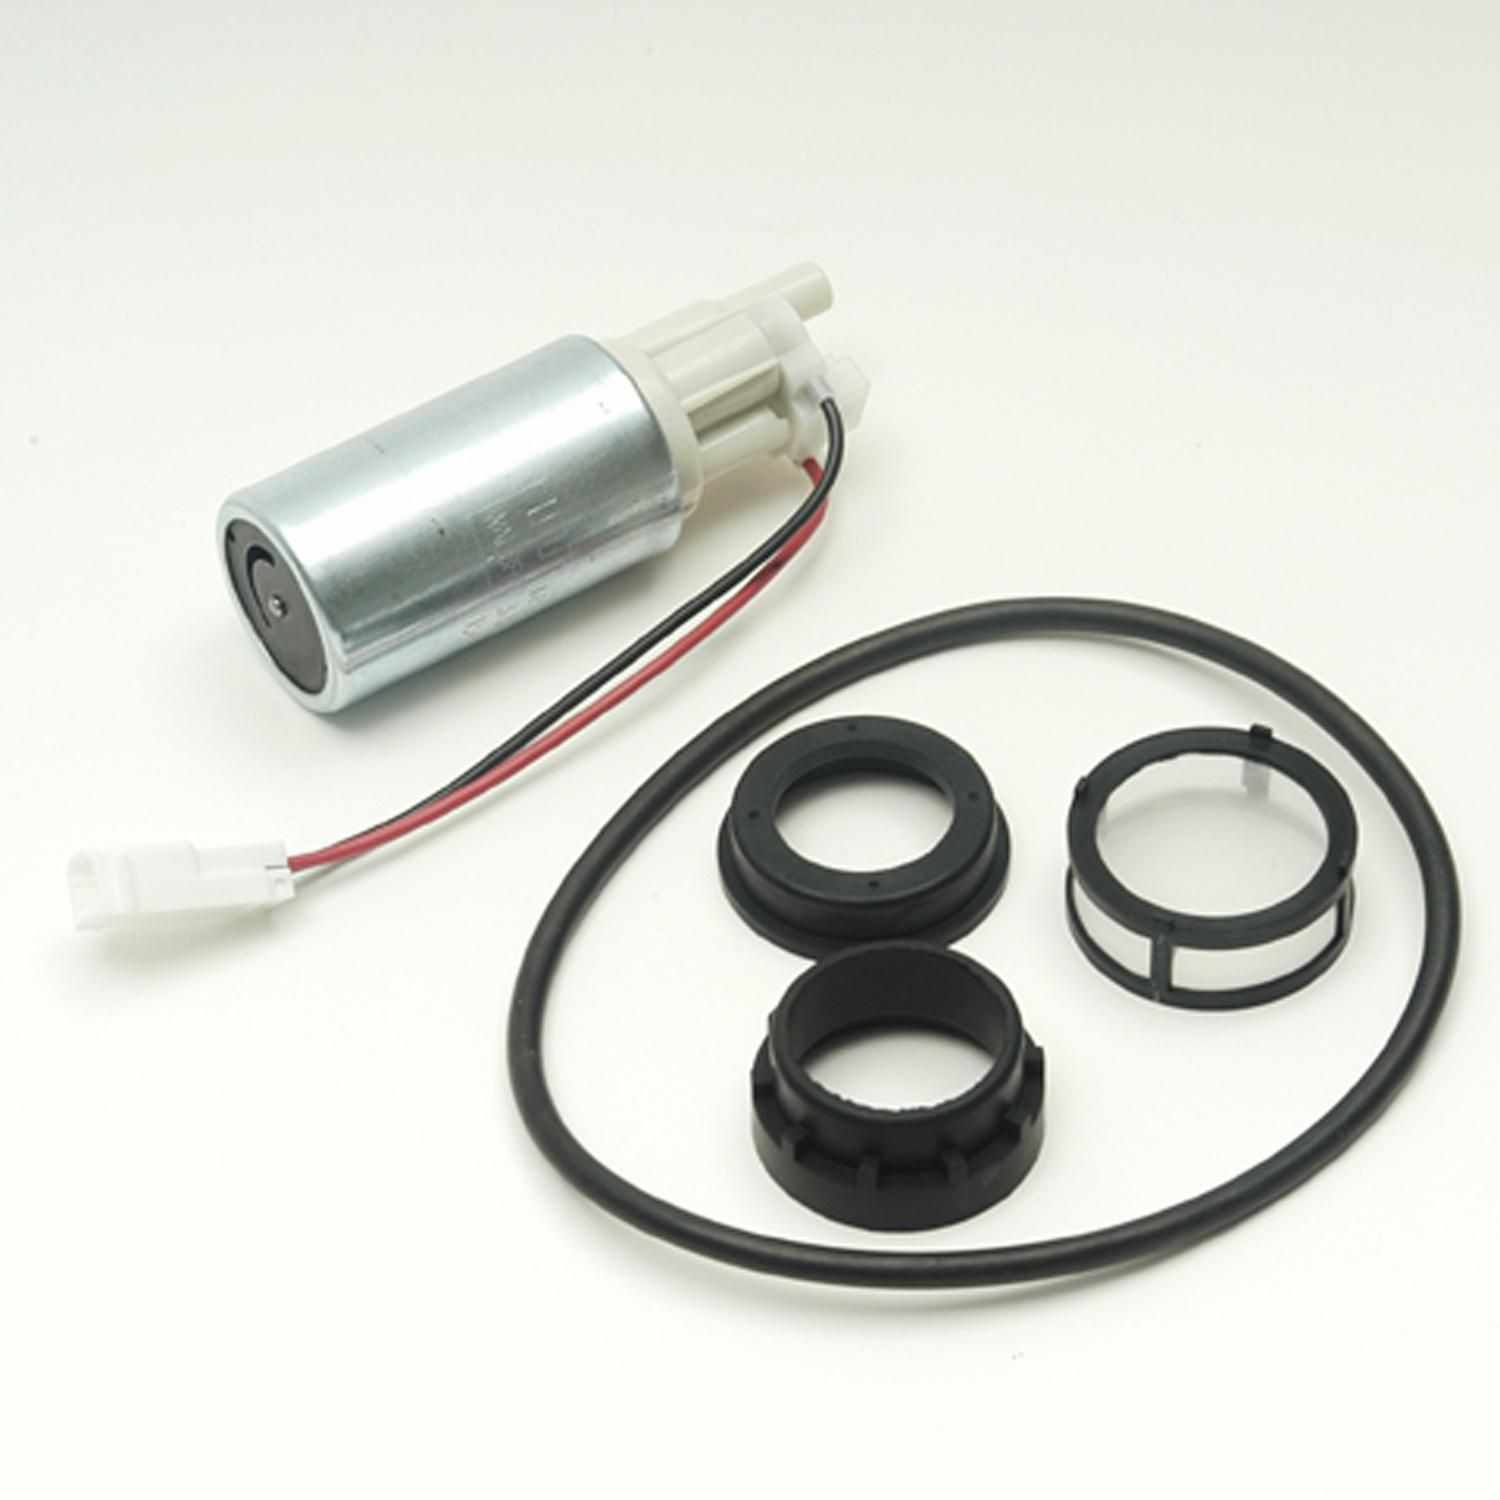 MAGNETI MARELLI OFFERED BY MOPAR - Fuel Pump and Strainer Set - MGM 1AMFP00143